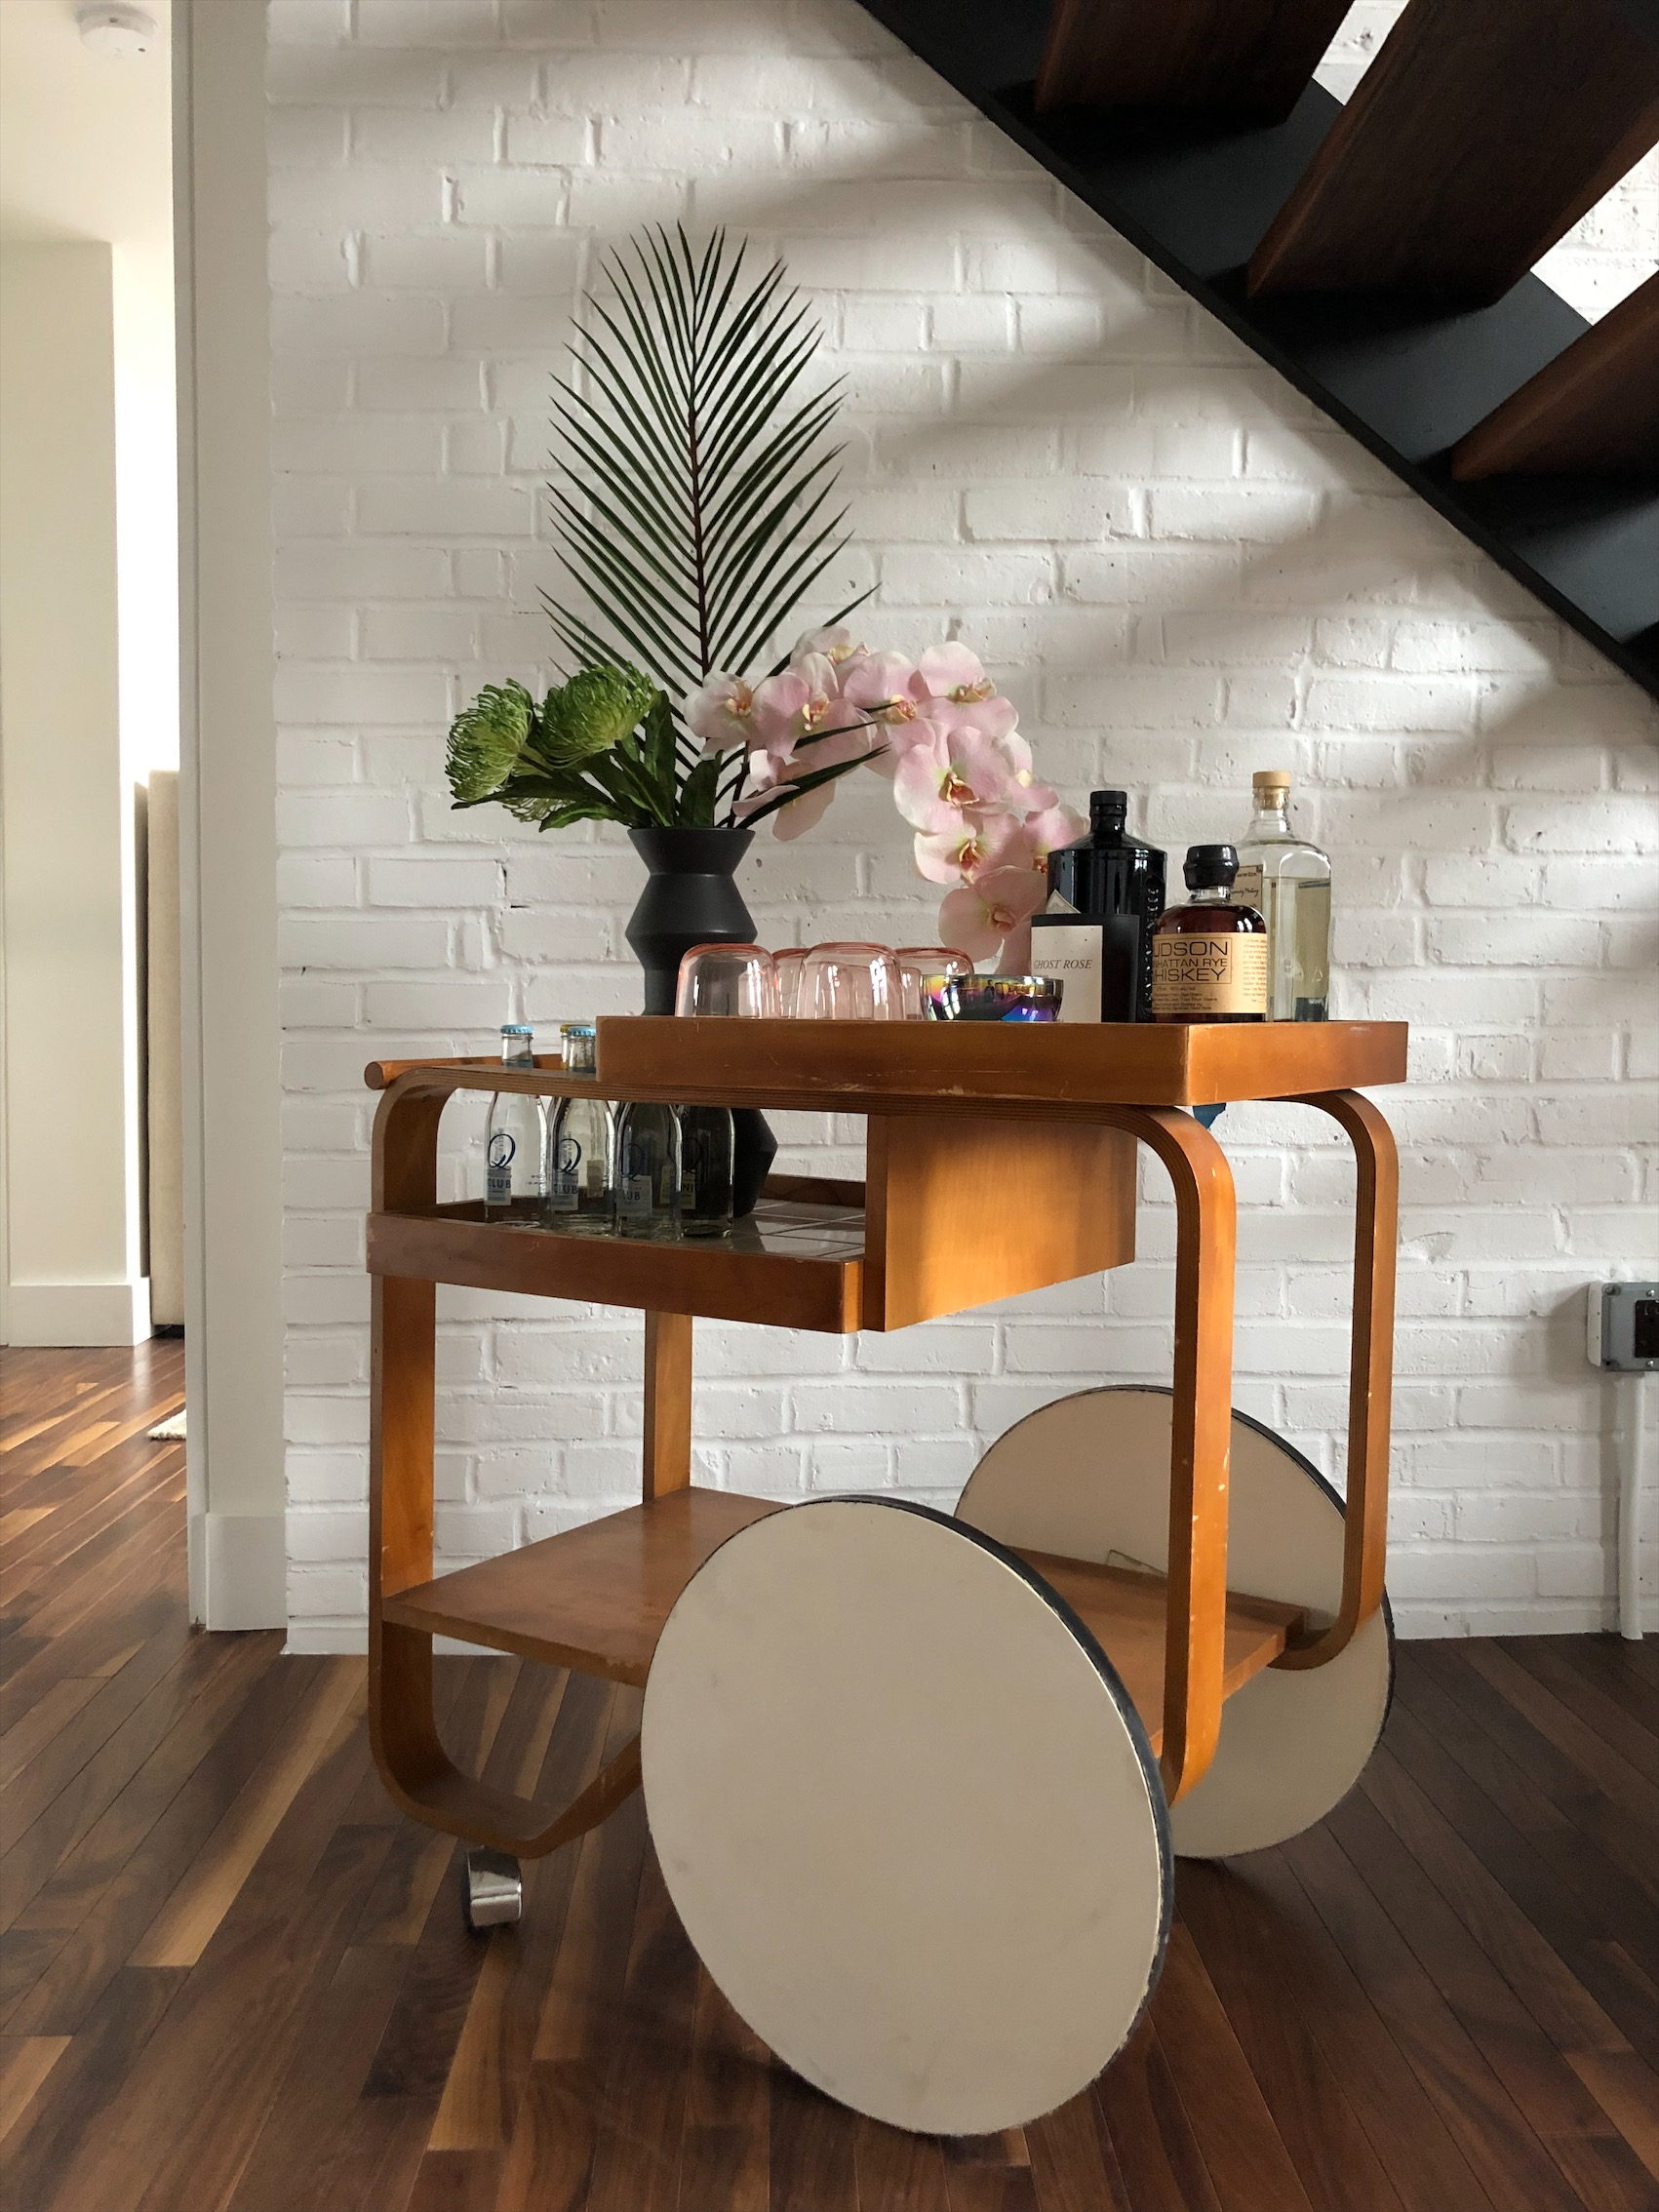 Hovey Design - Staging NYC Brooklyn - 11.jpg